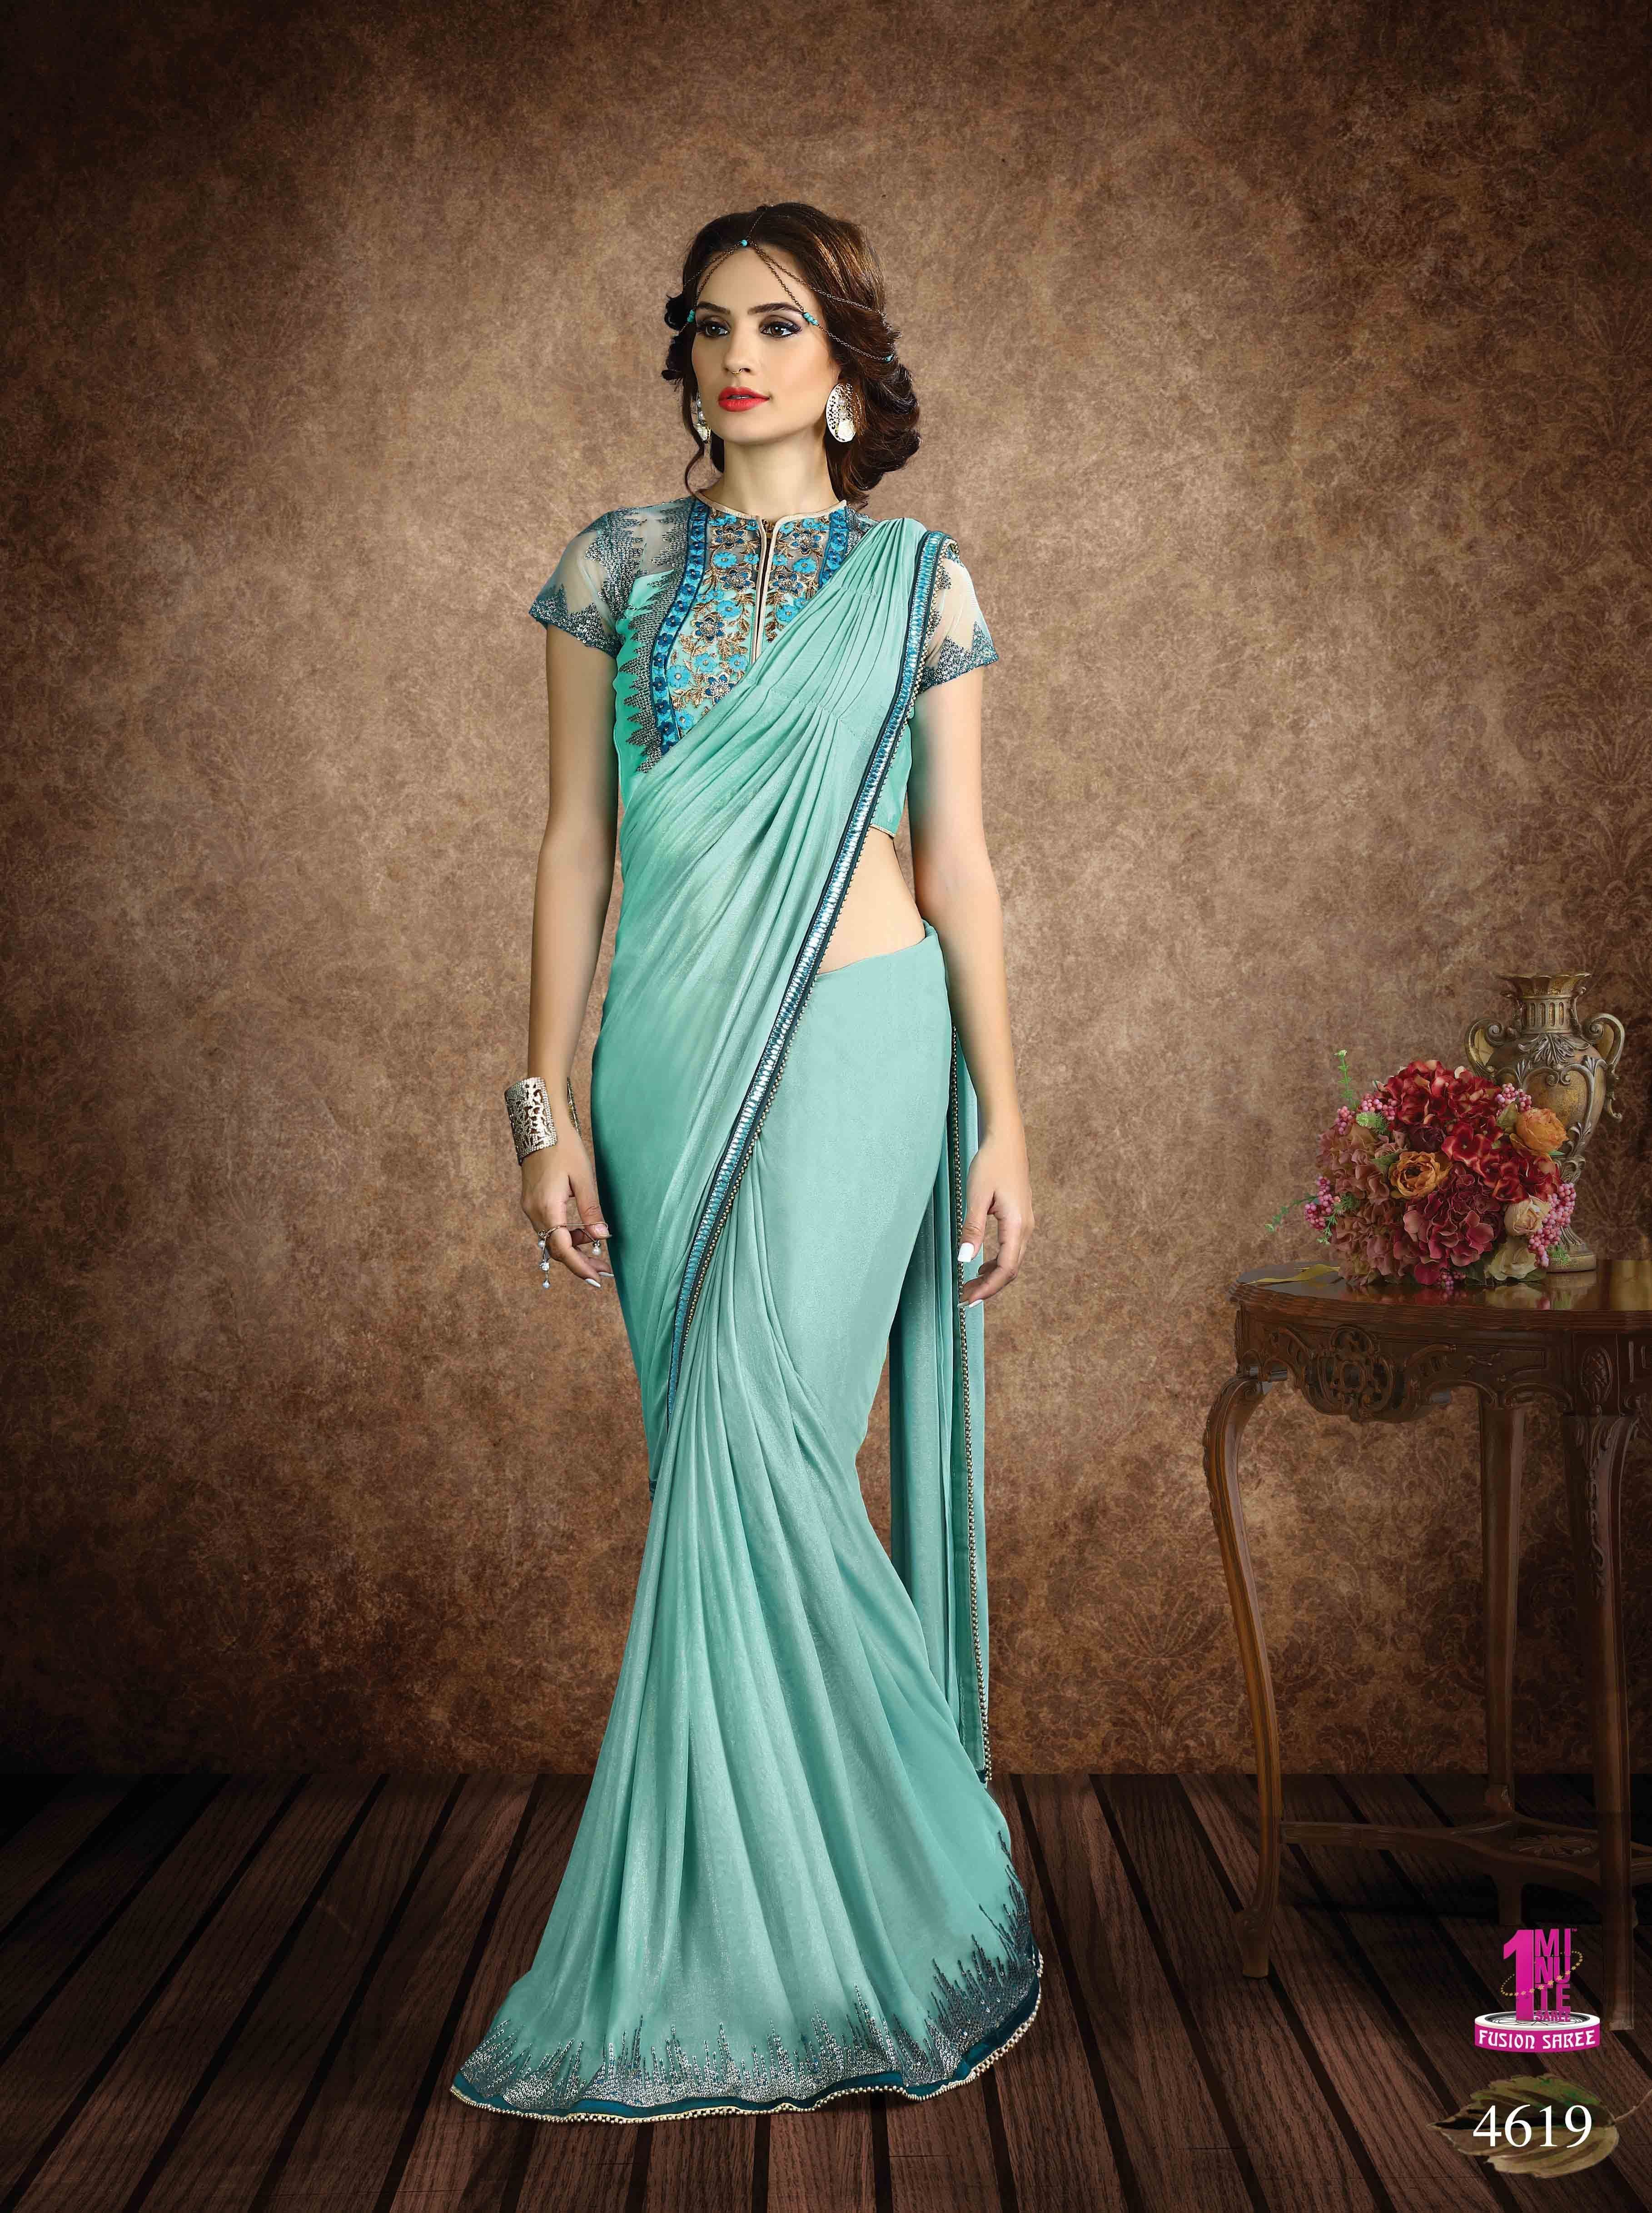 Norita Saree 4619 | Indian dresses, Saree and Desi